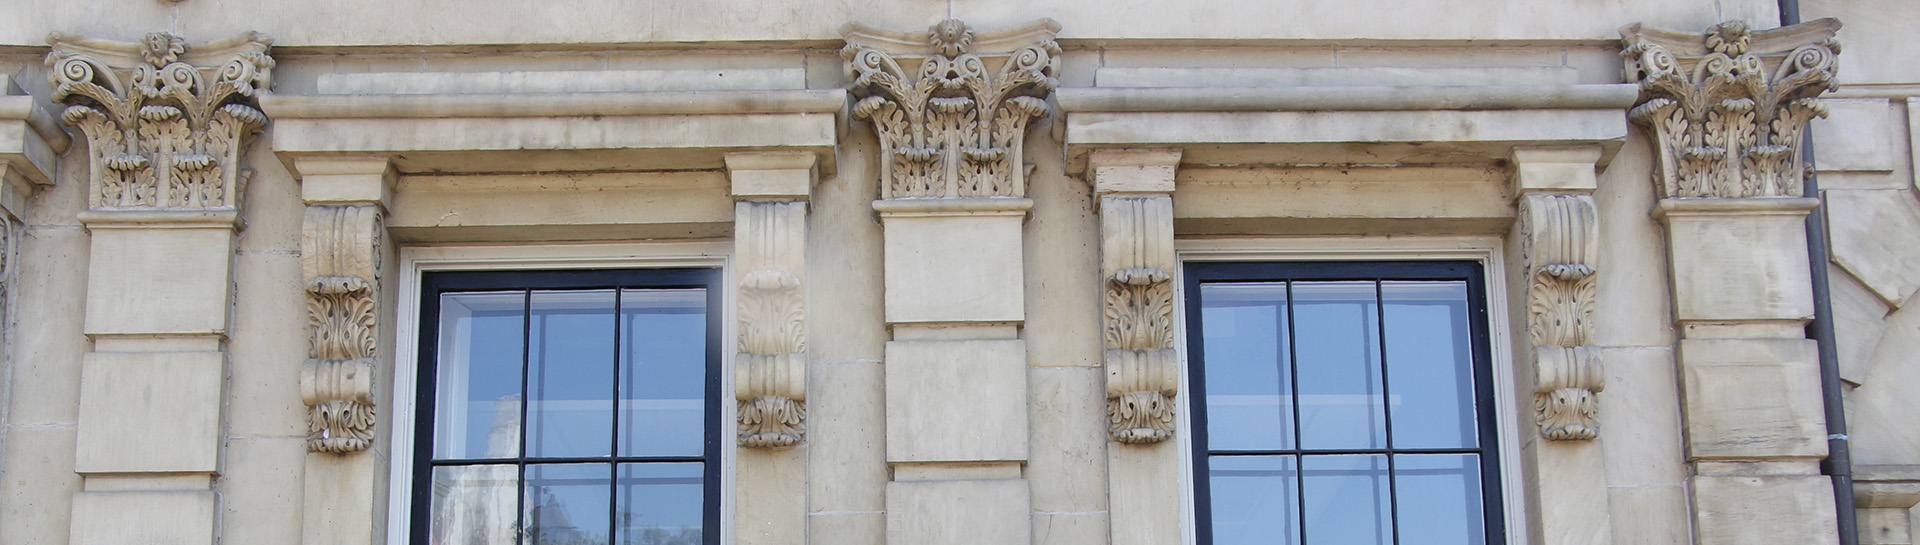 Architectural detail on Victoria Hall in Cobourg